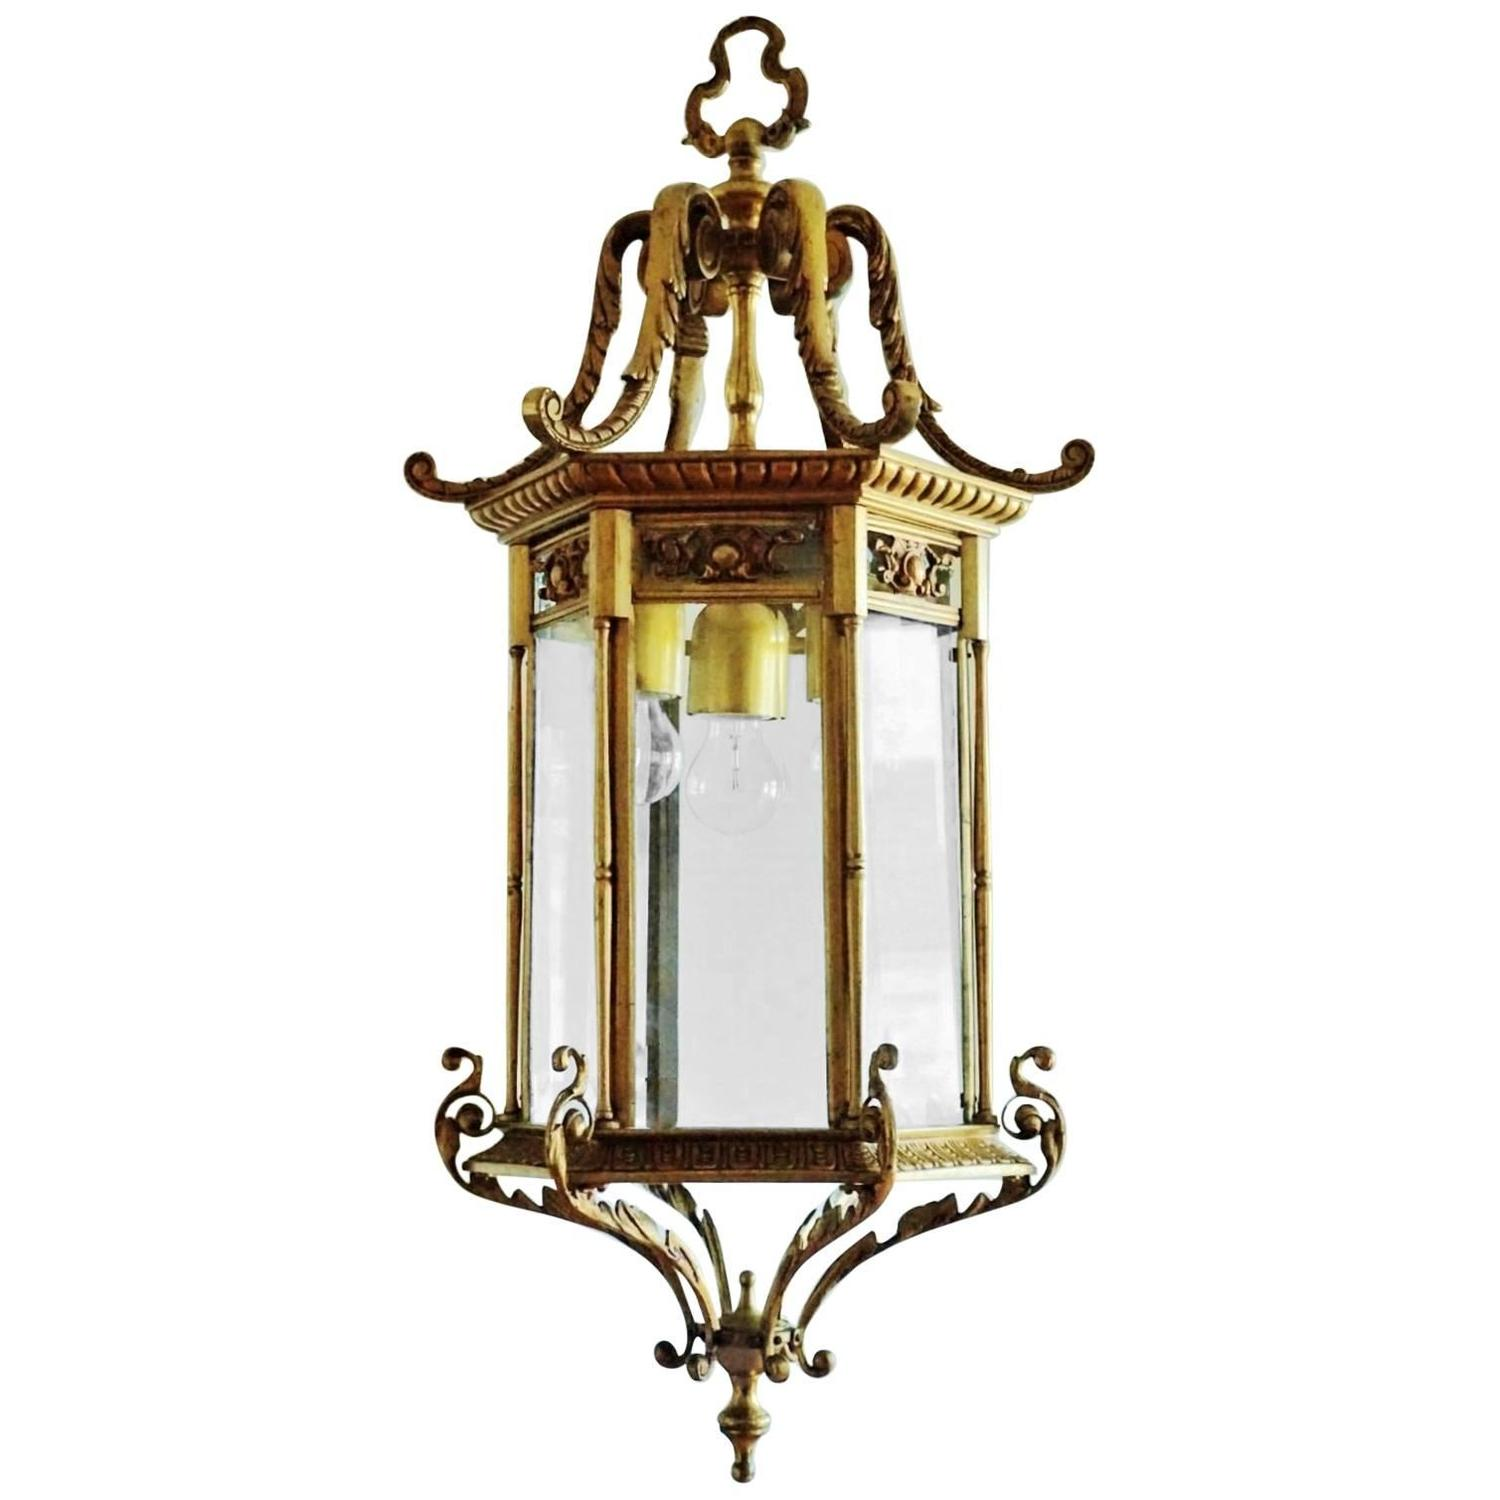 1870s Chandeliers and Pendants 40 For Sale at 1stdibs